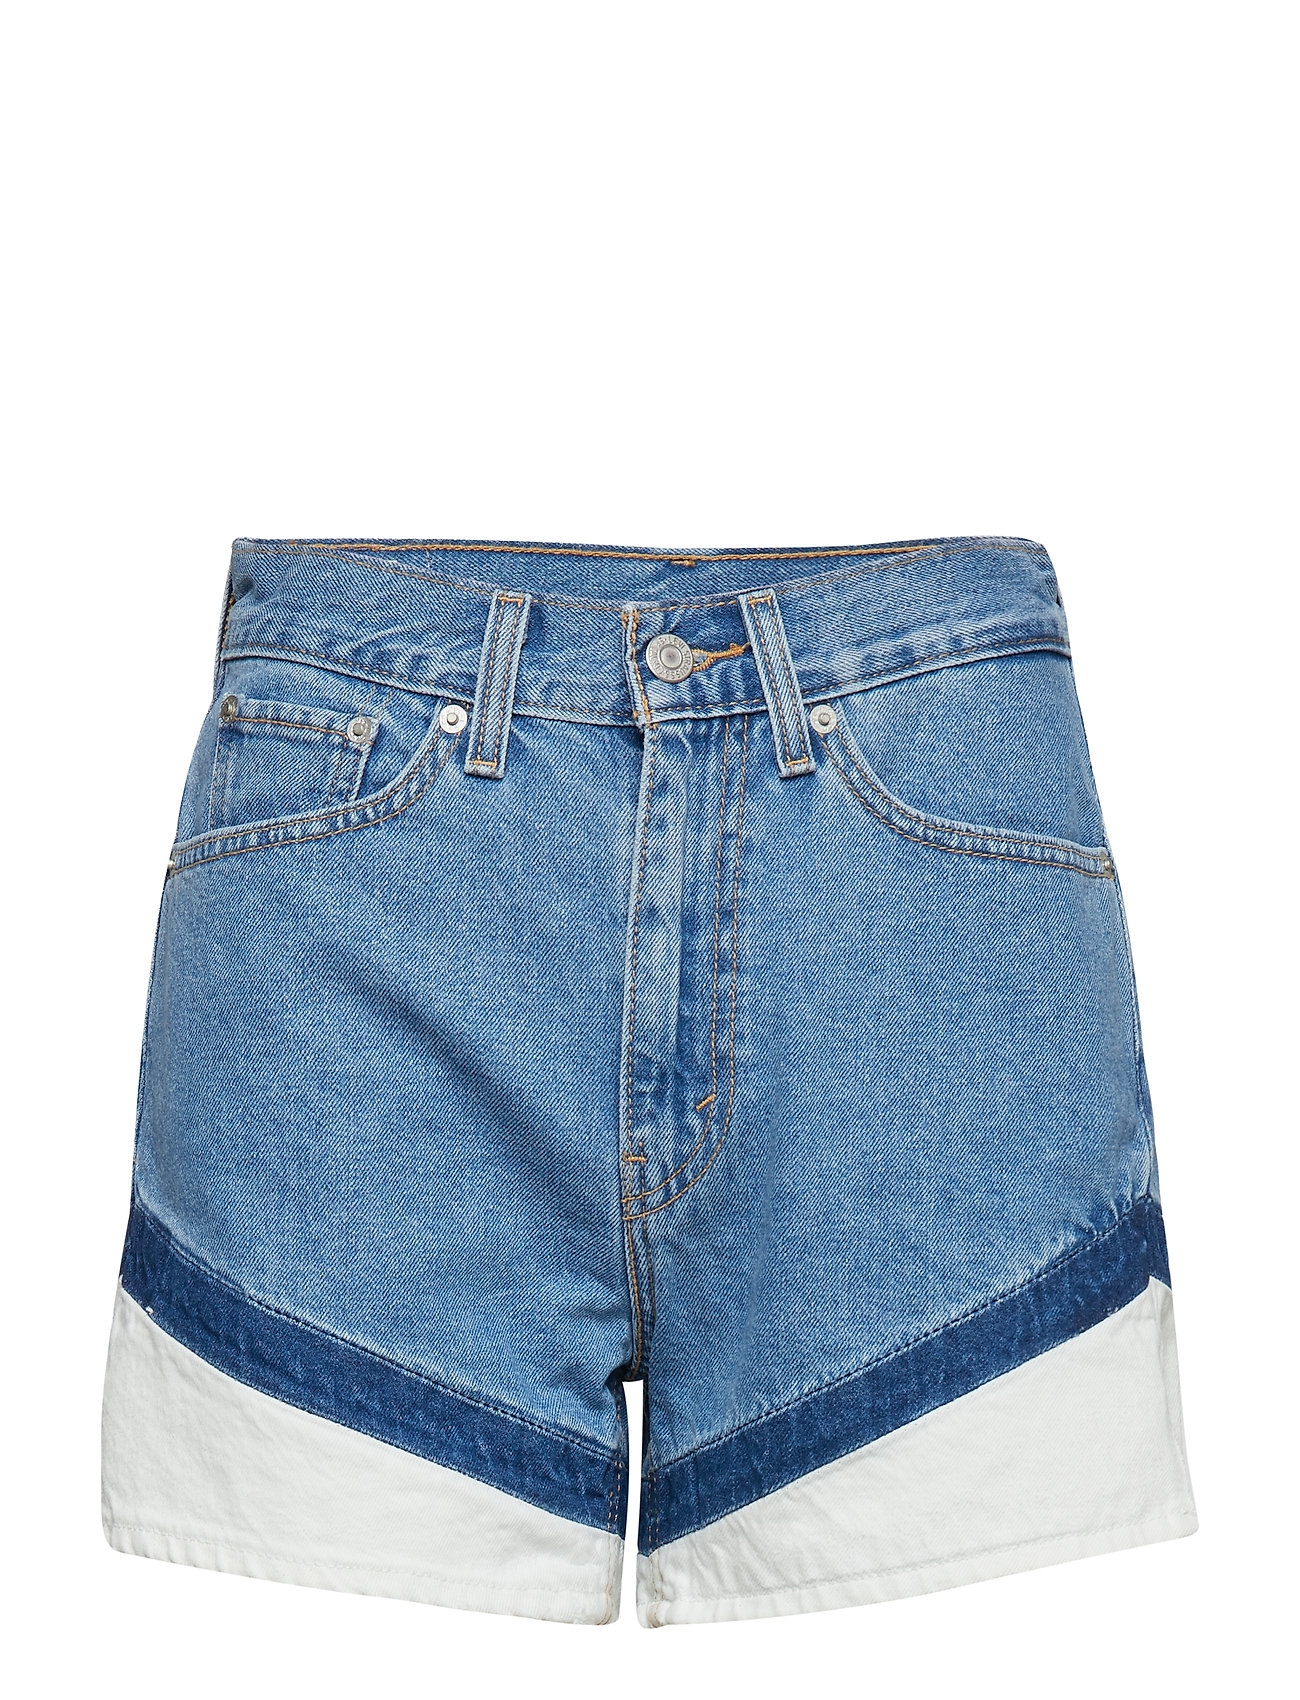 LEVI´S Women MOM A LINE SHORT ON YOUR MARKS - LIGHT INDIGO - WORN IN